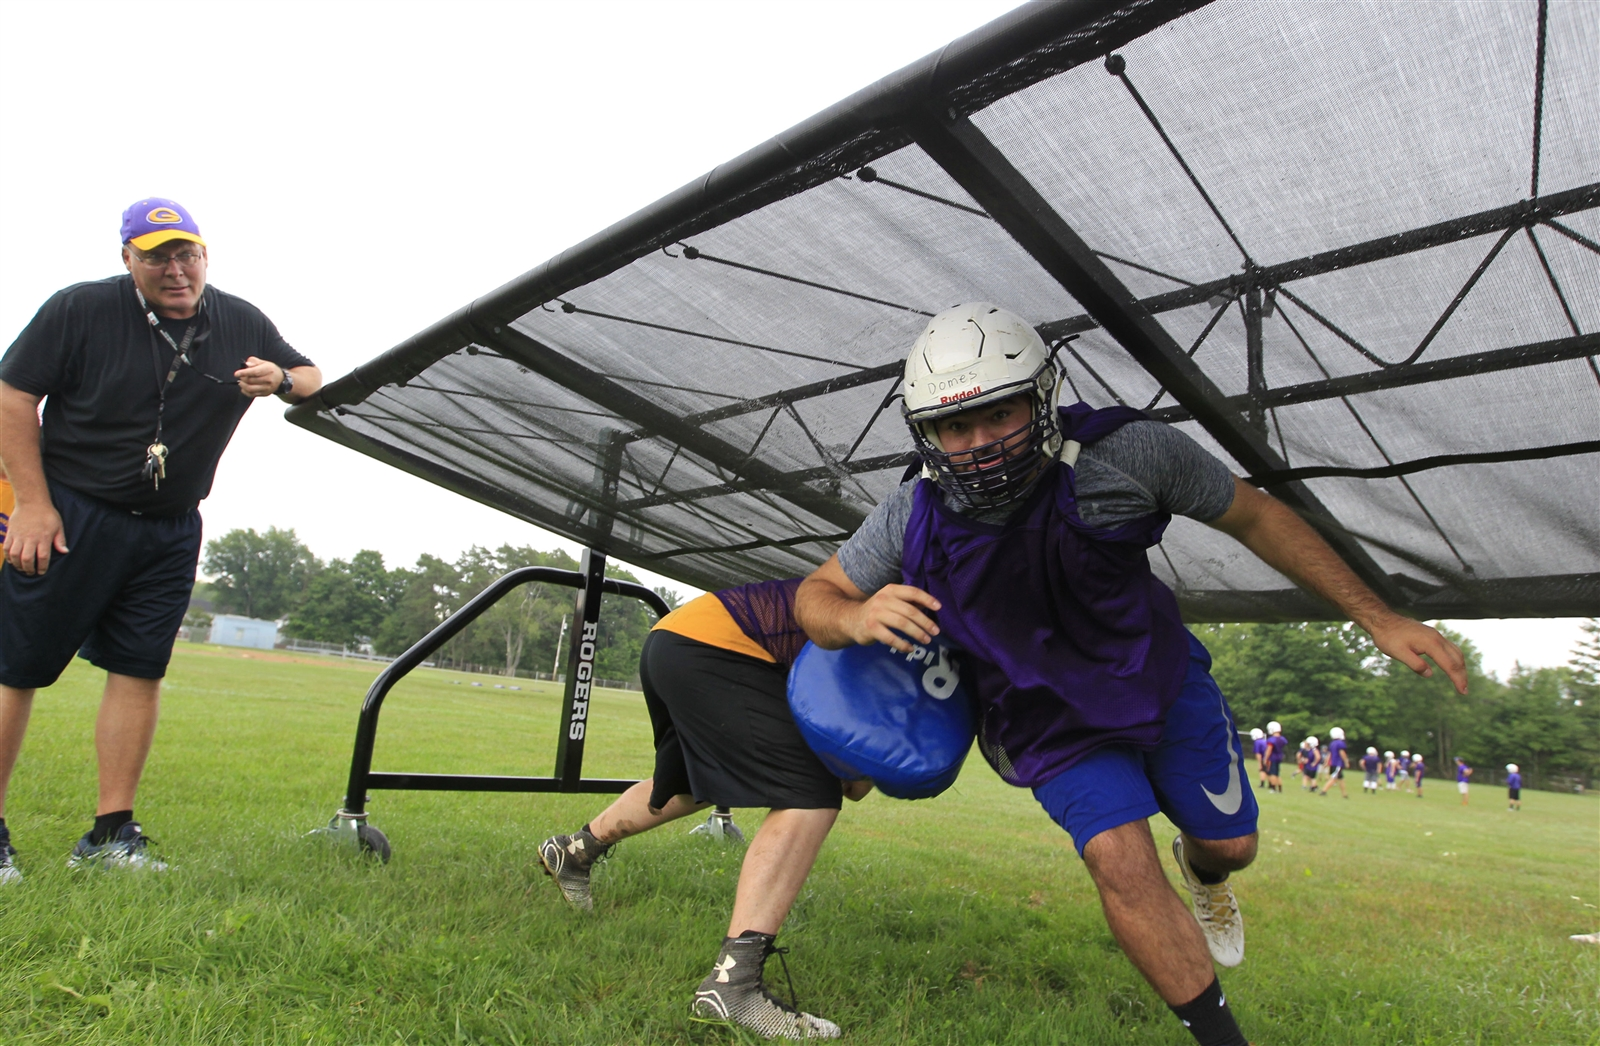 Springville coach Eric Jantzi watches John Domes during practice.